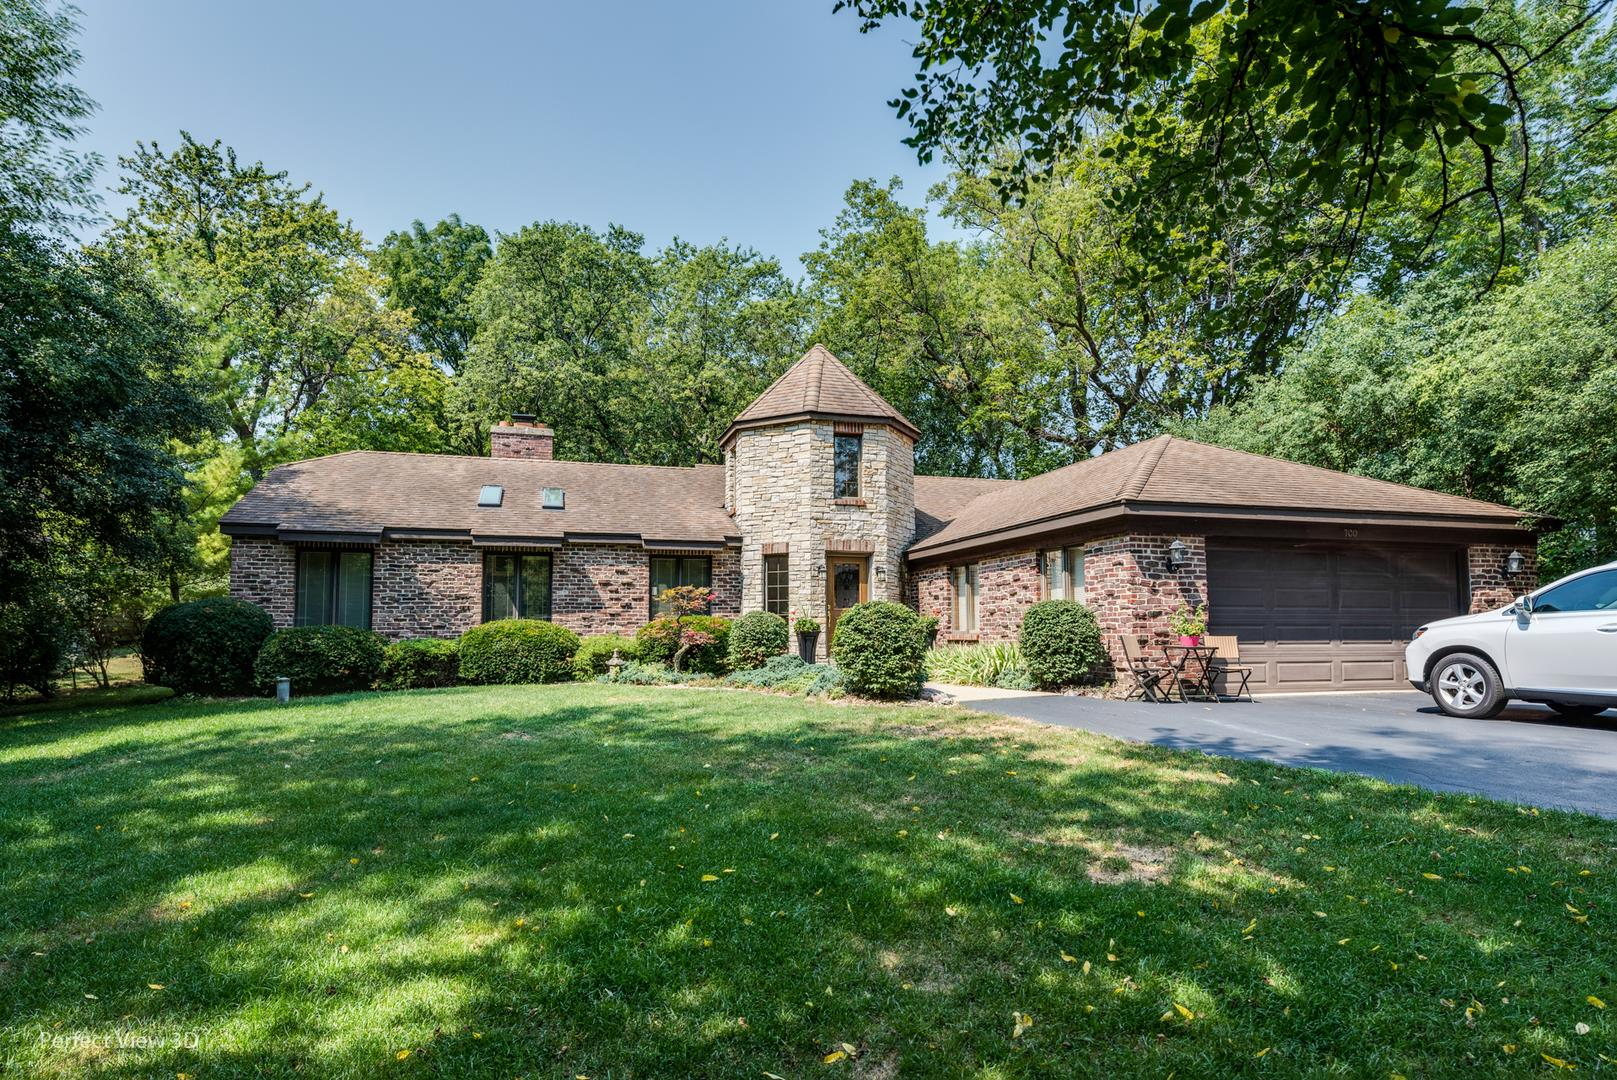 700 N Maple Street, Prospect Heights, IL 60070 - #: 10814392